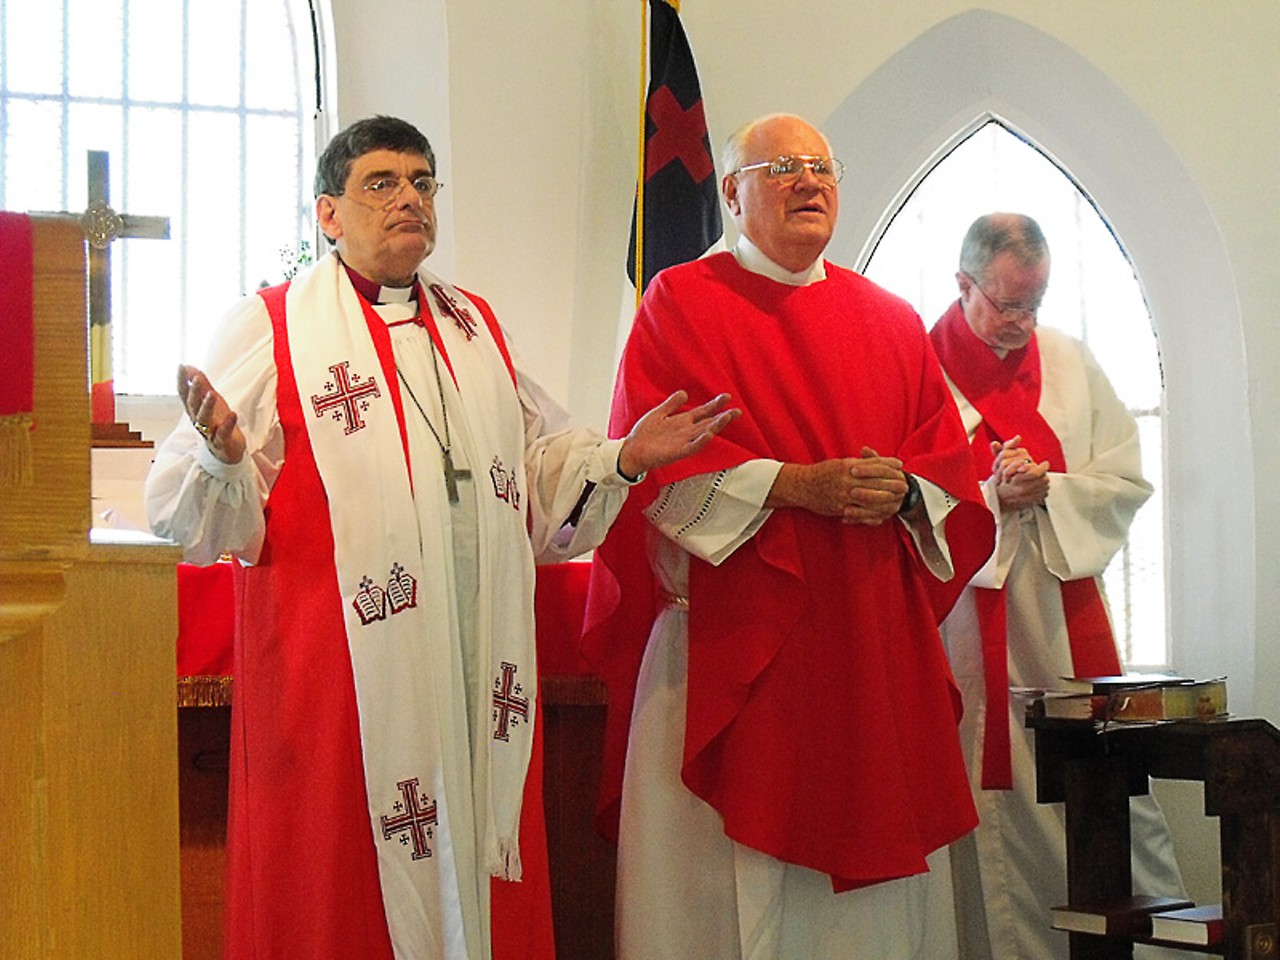 white collar crime anglican bishop martin sigillito is accused of white